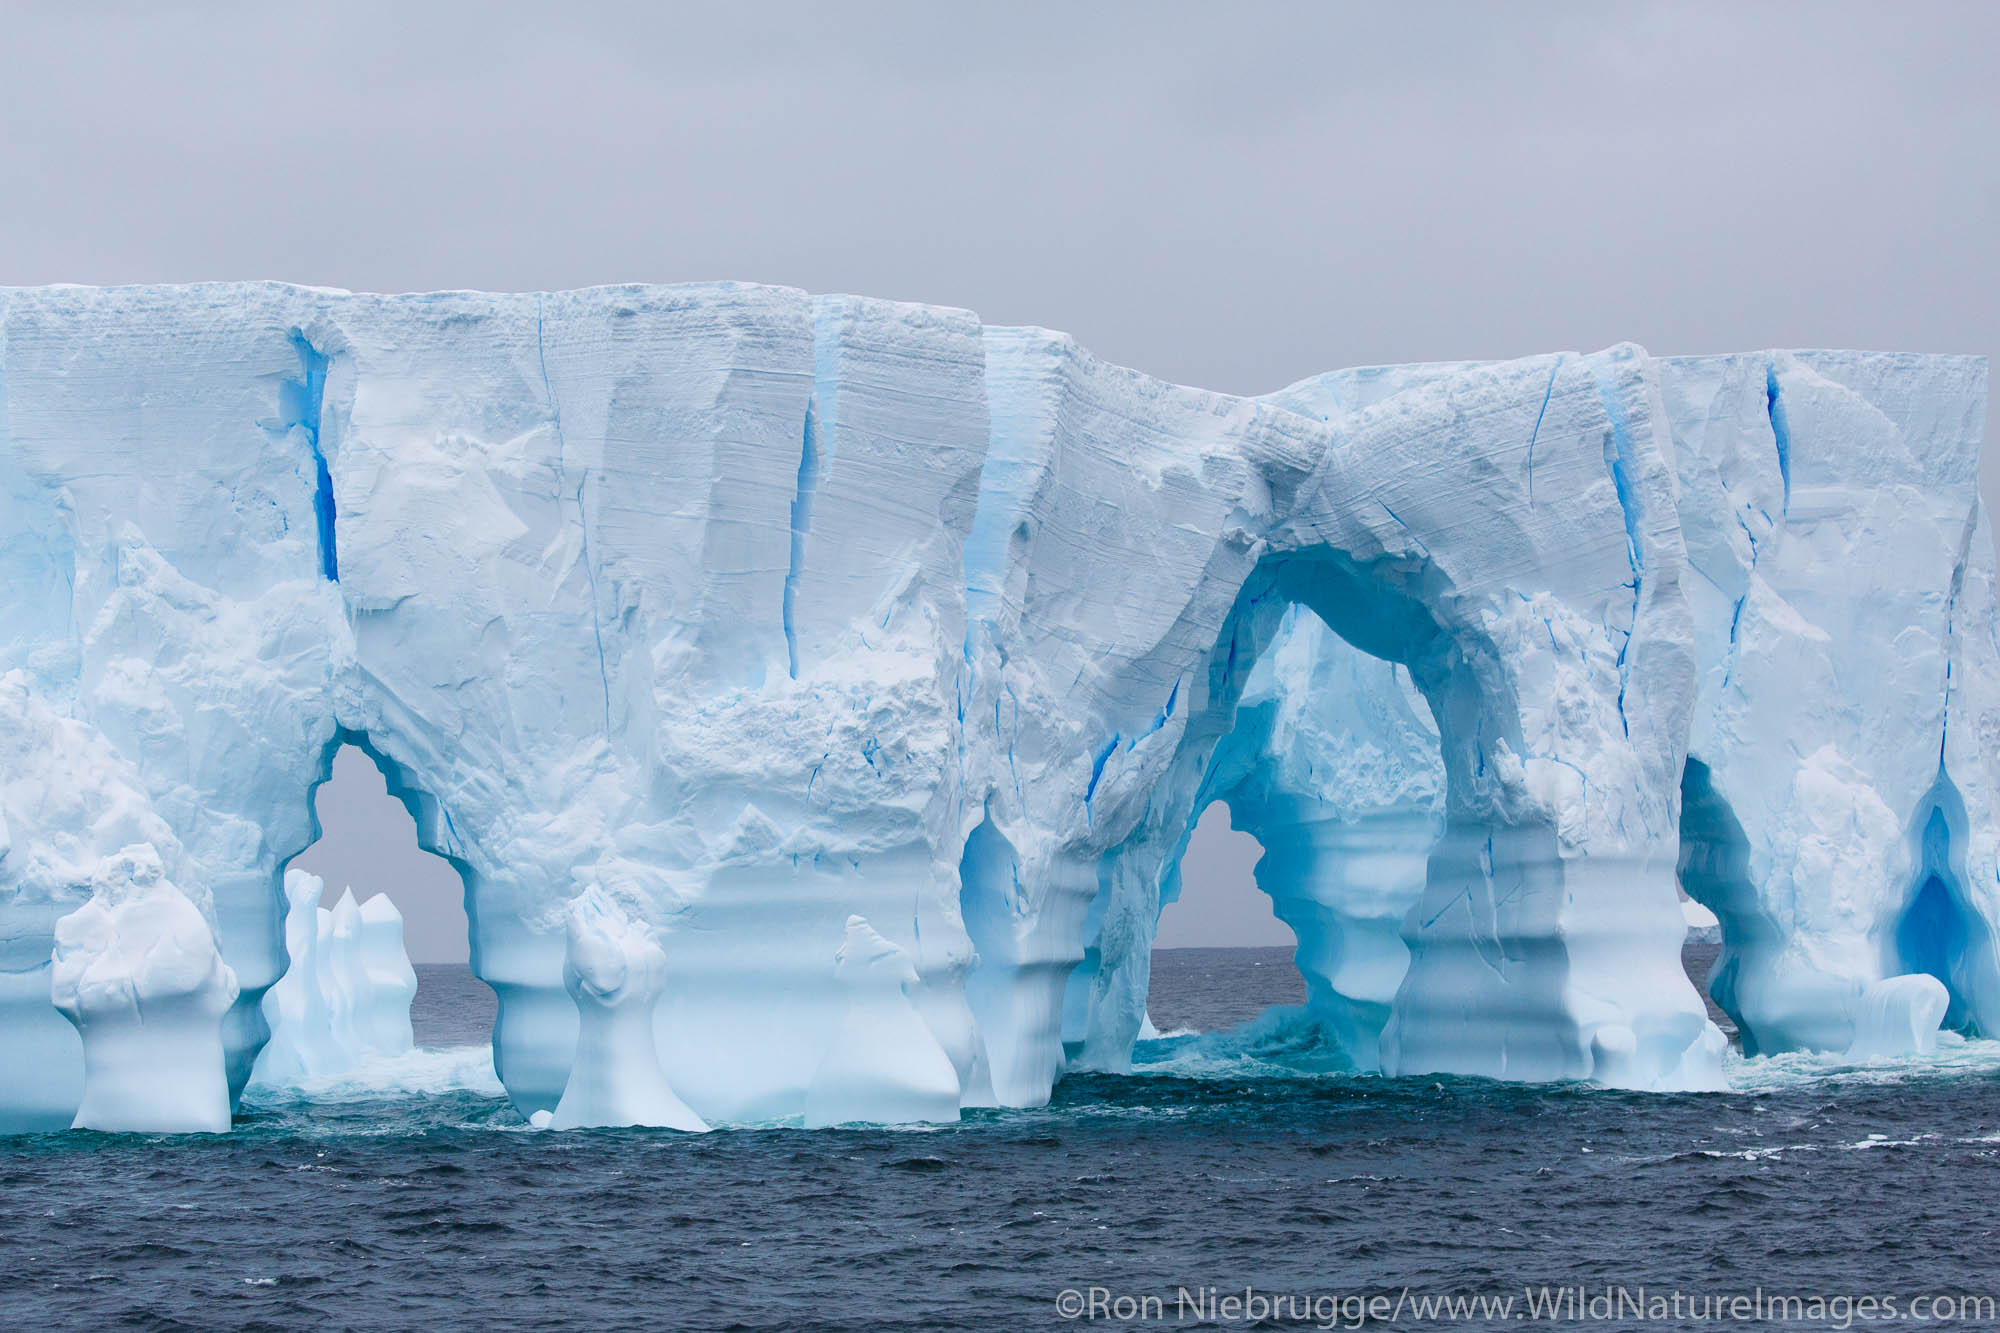 Huge arched iceberg south of the Antarctica Circle, Antarctica.